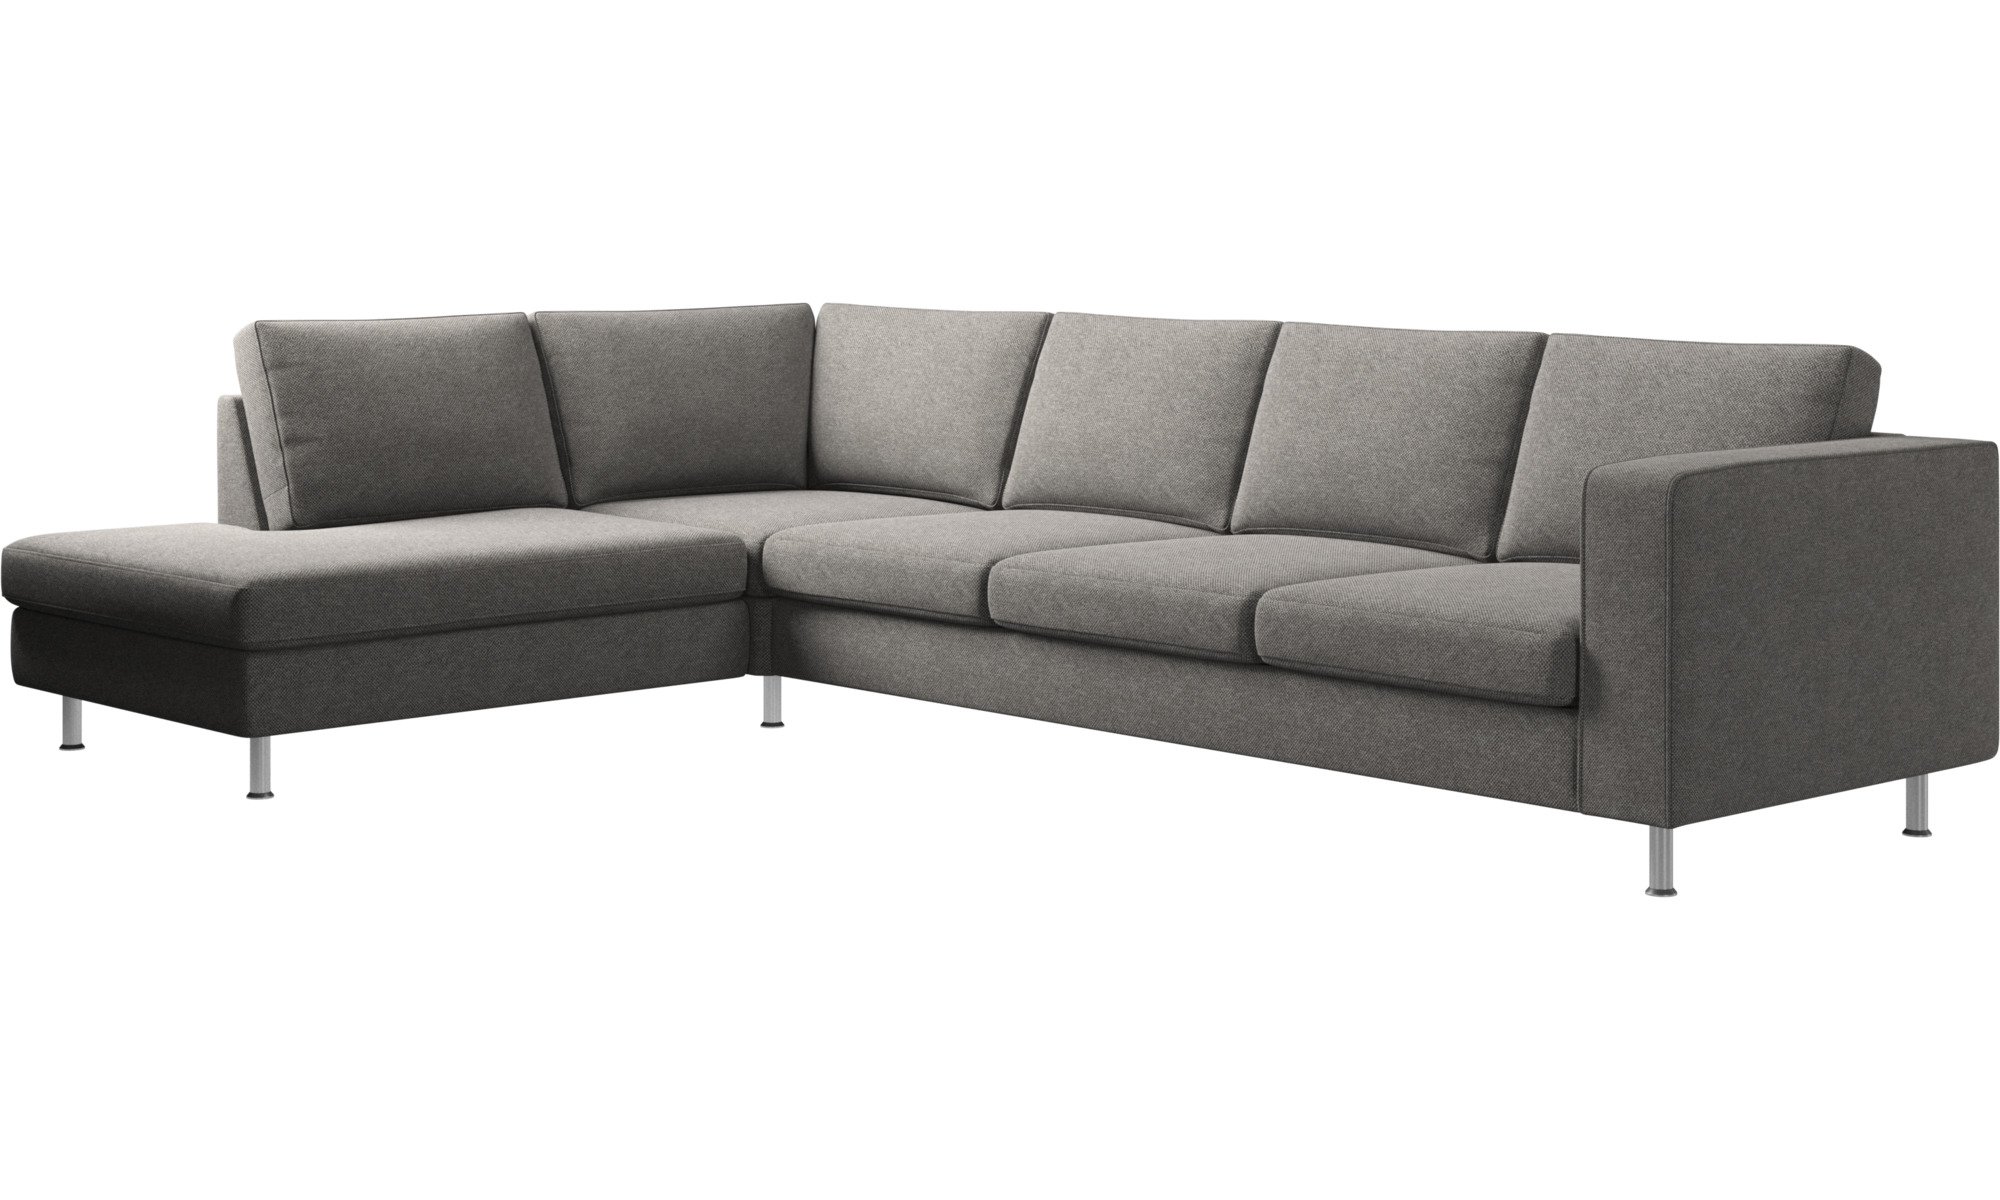 Sofas With Open End Indivi 2 Corner Sofa Lounging Unit Grey Fabric